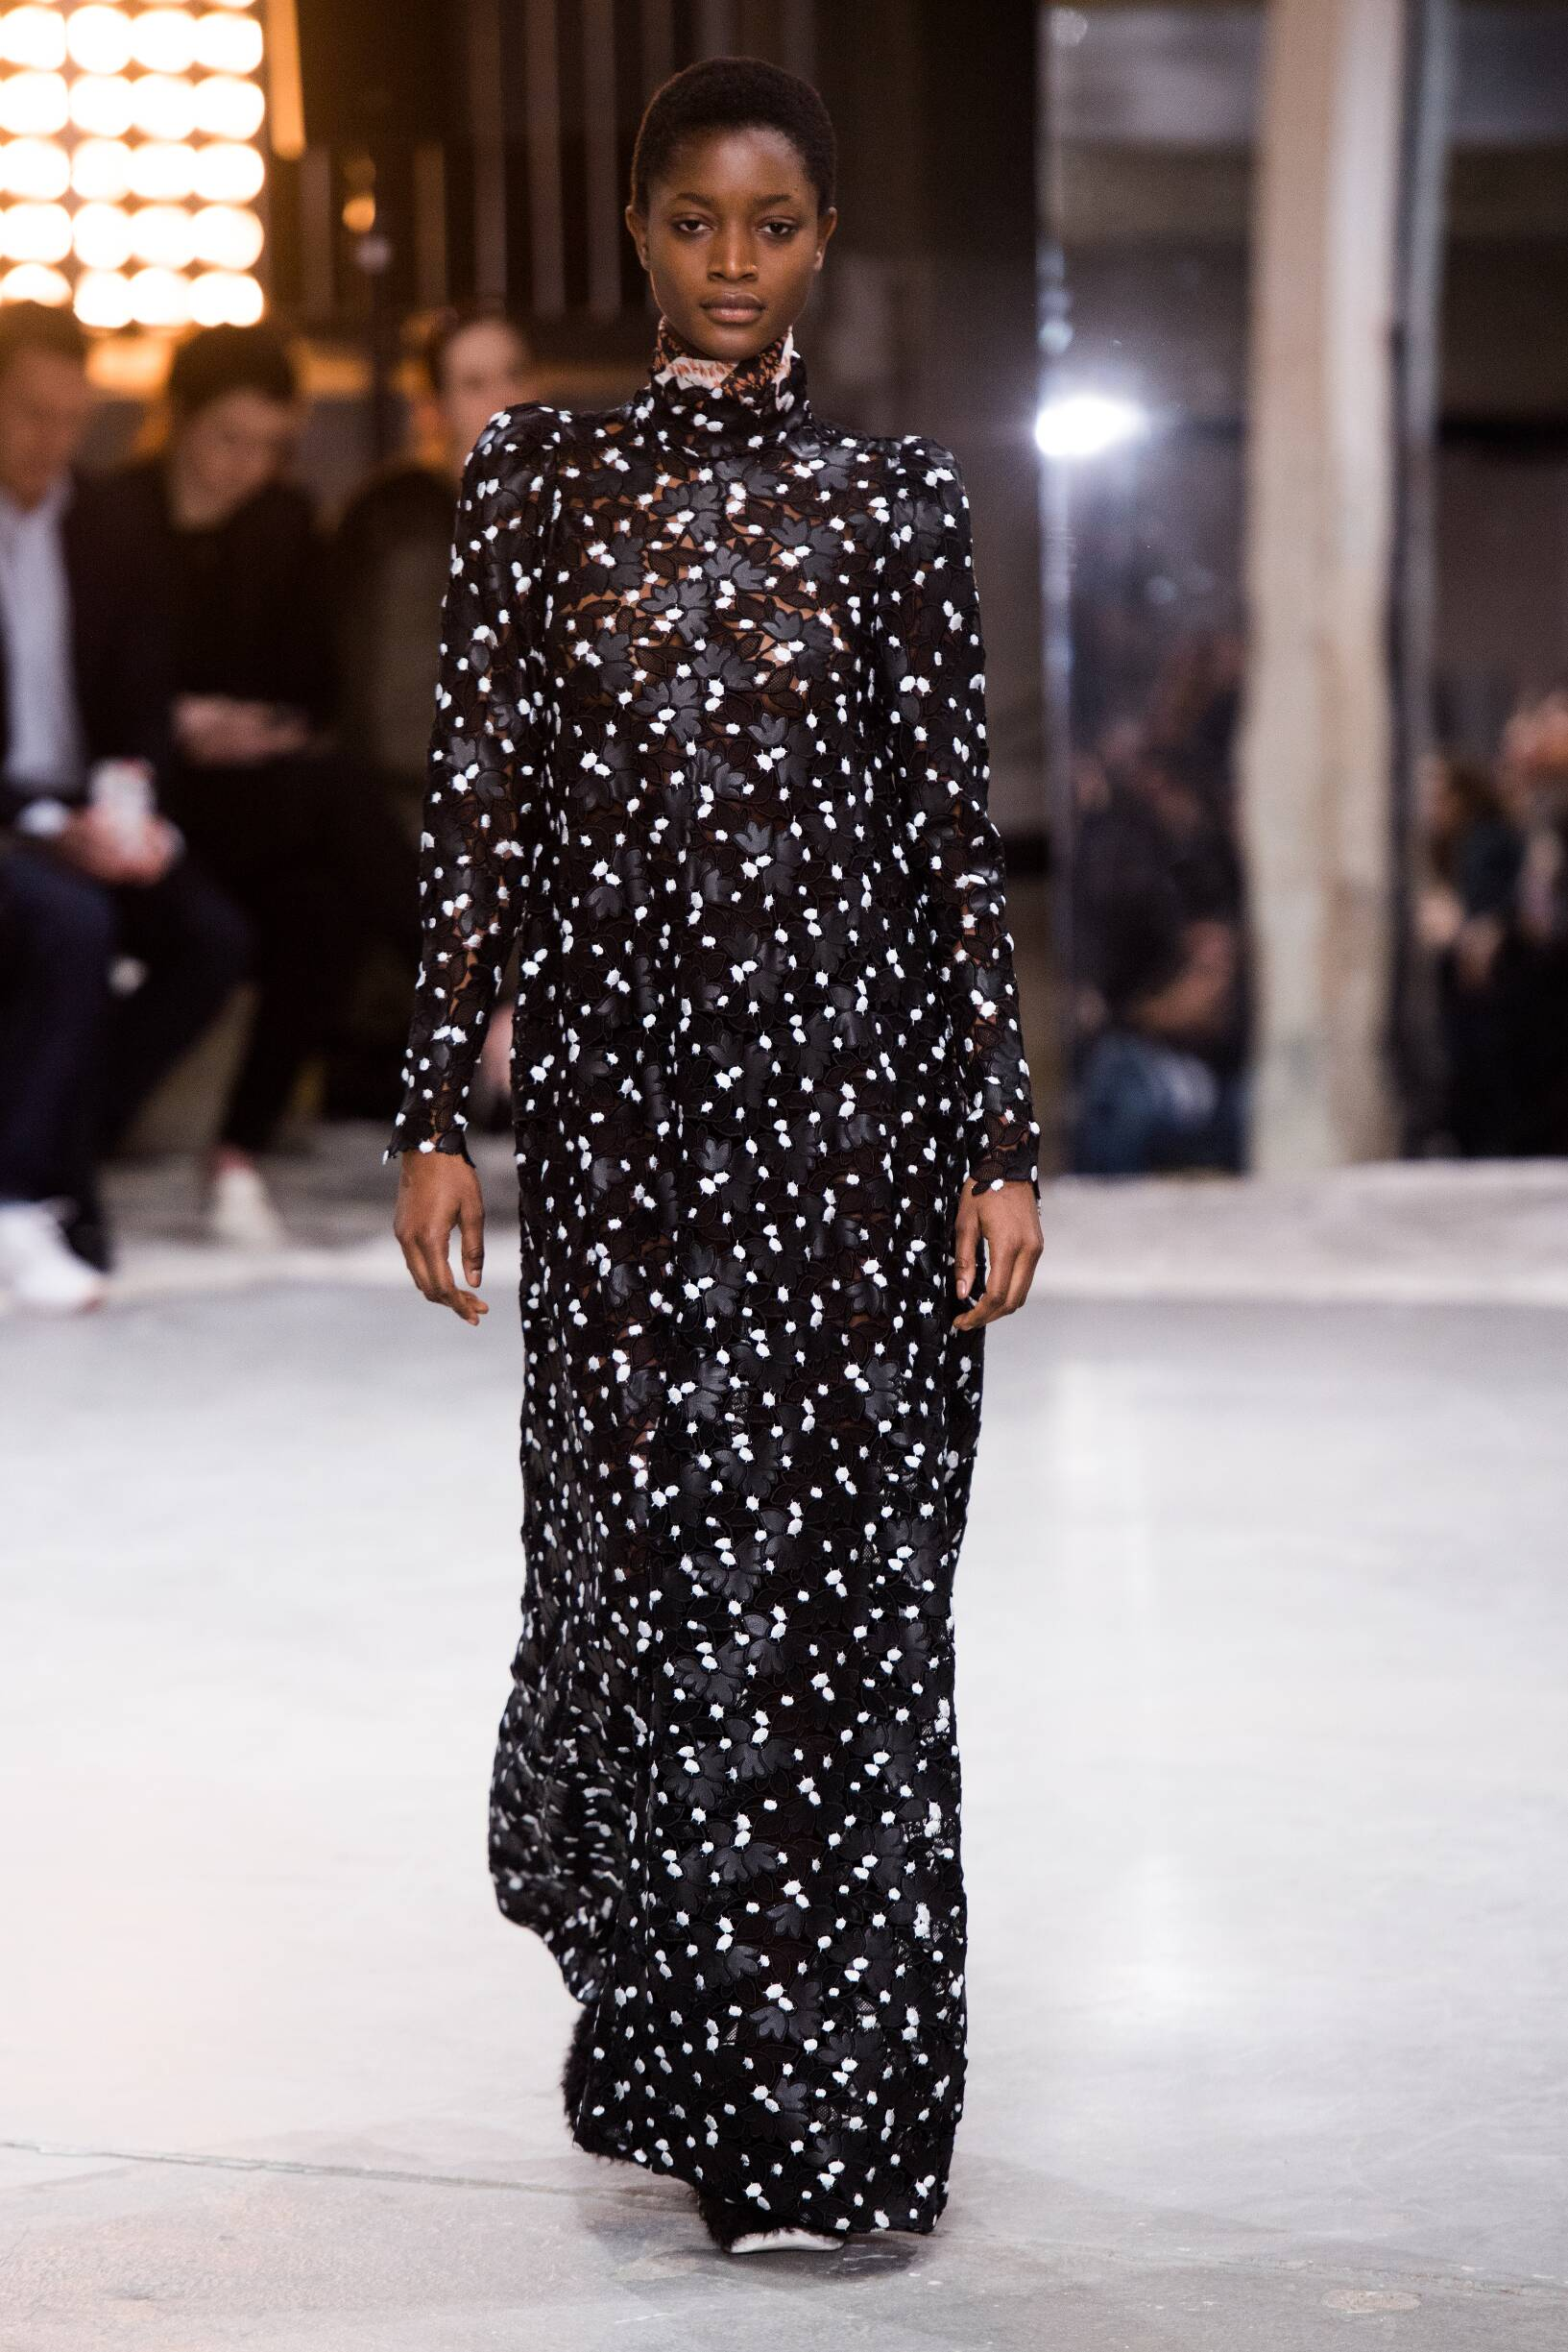 Giambattista Valli Fall 2018 Catwalk